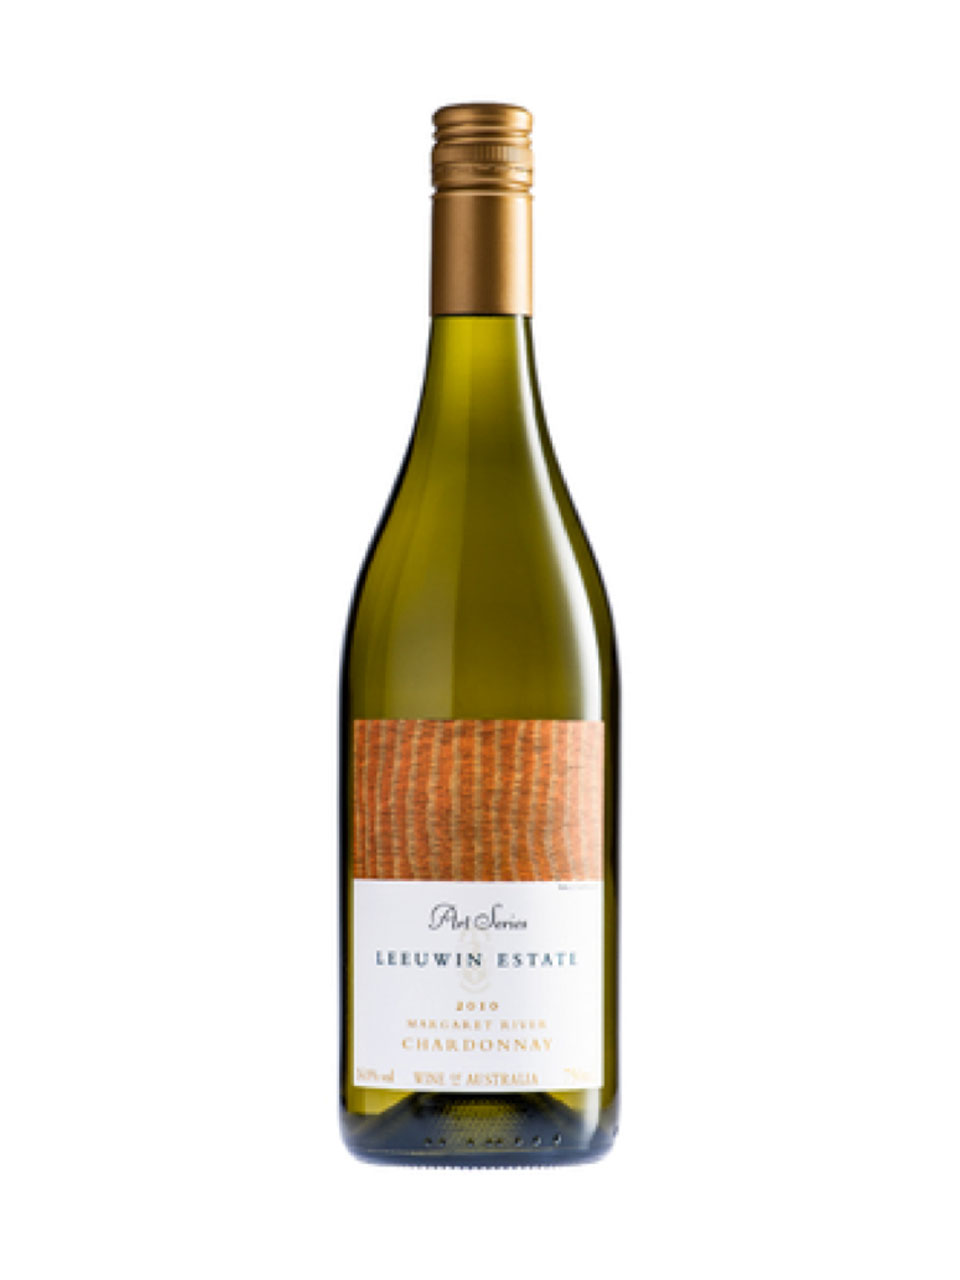 Leeuwin Estate Art Series Chardonnay 2010